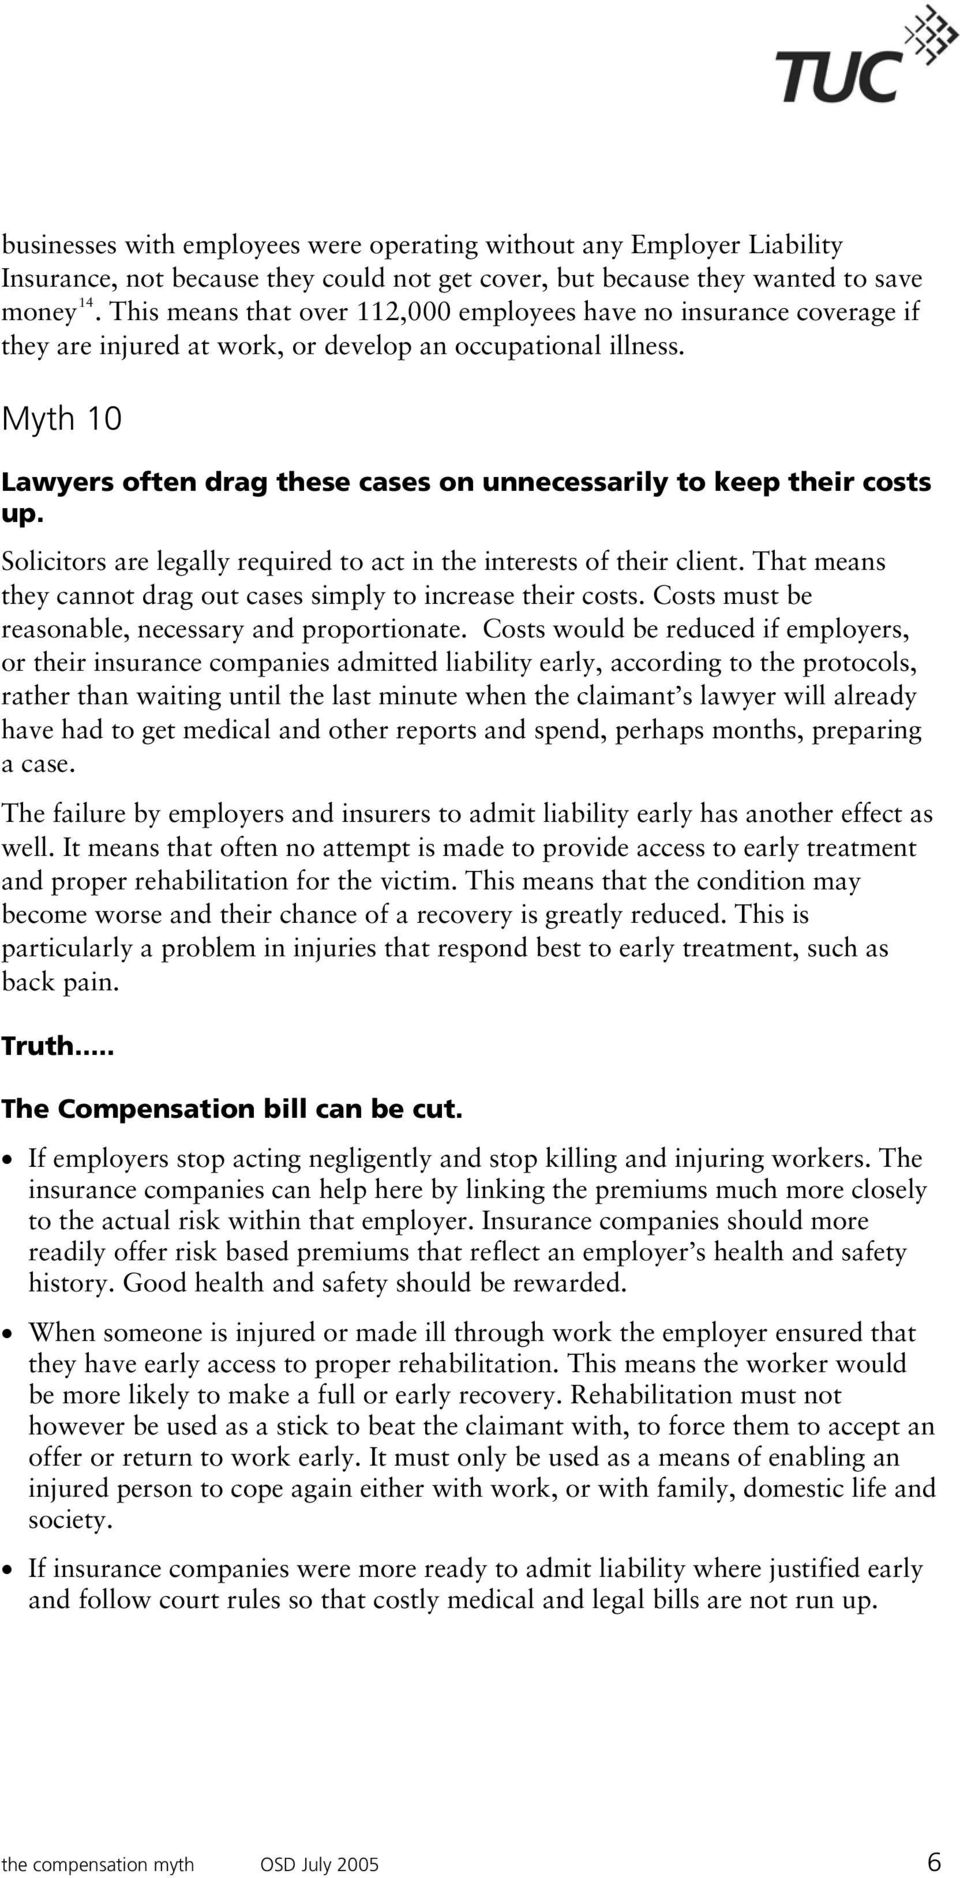 Myth 10 Lawyers often drag these cases on unnecessarily to keep their costs up. Solicitors are legally required to act in the interests of their client.